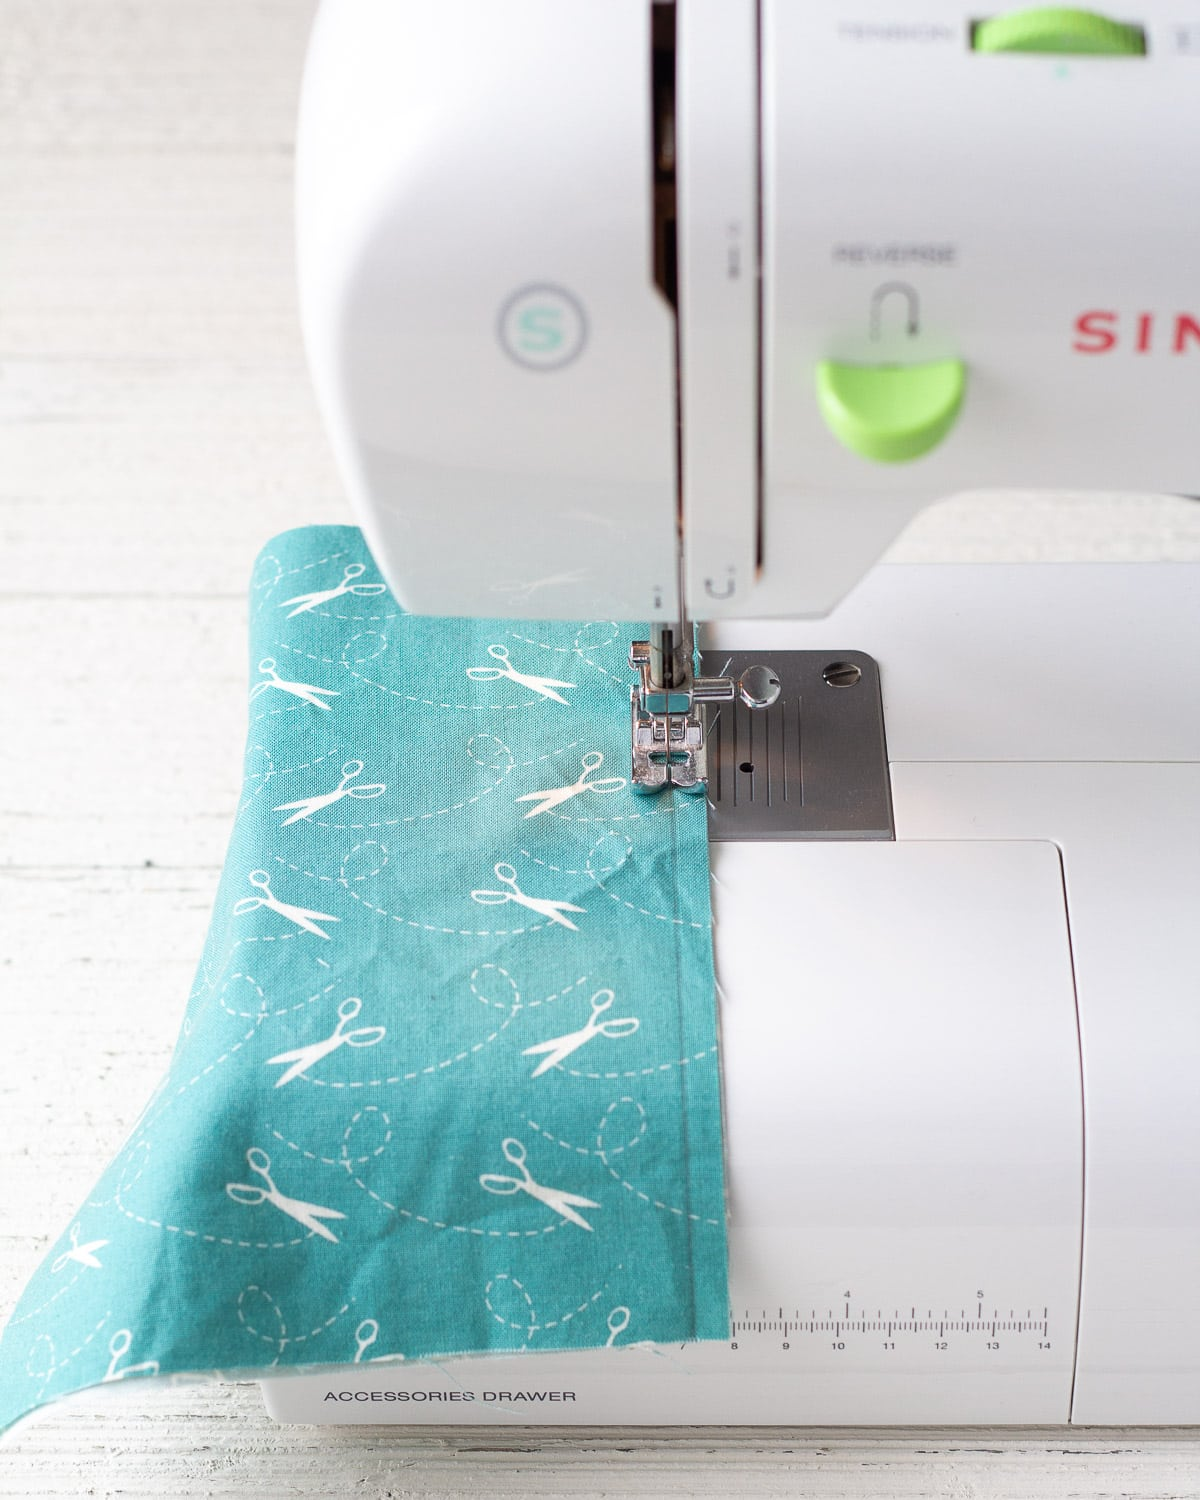 Stitching a seam on a sewing machine.